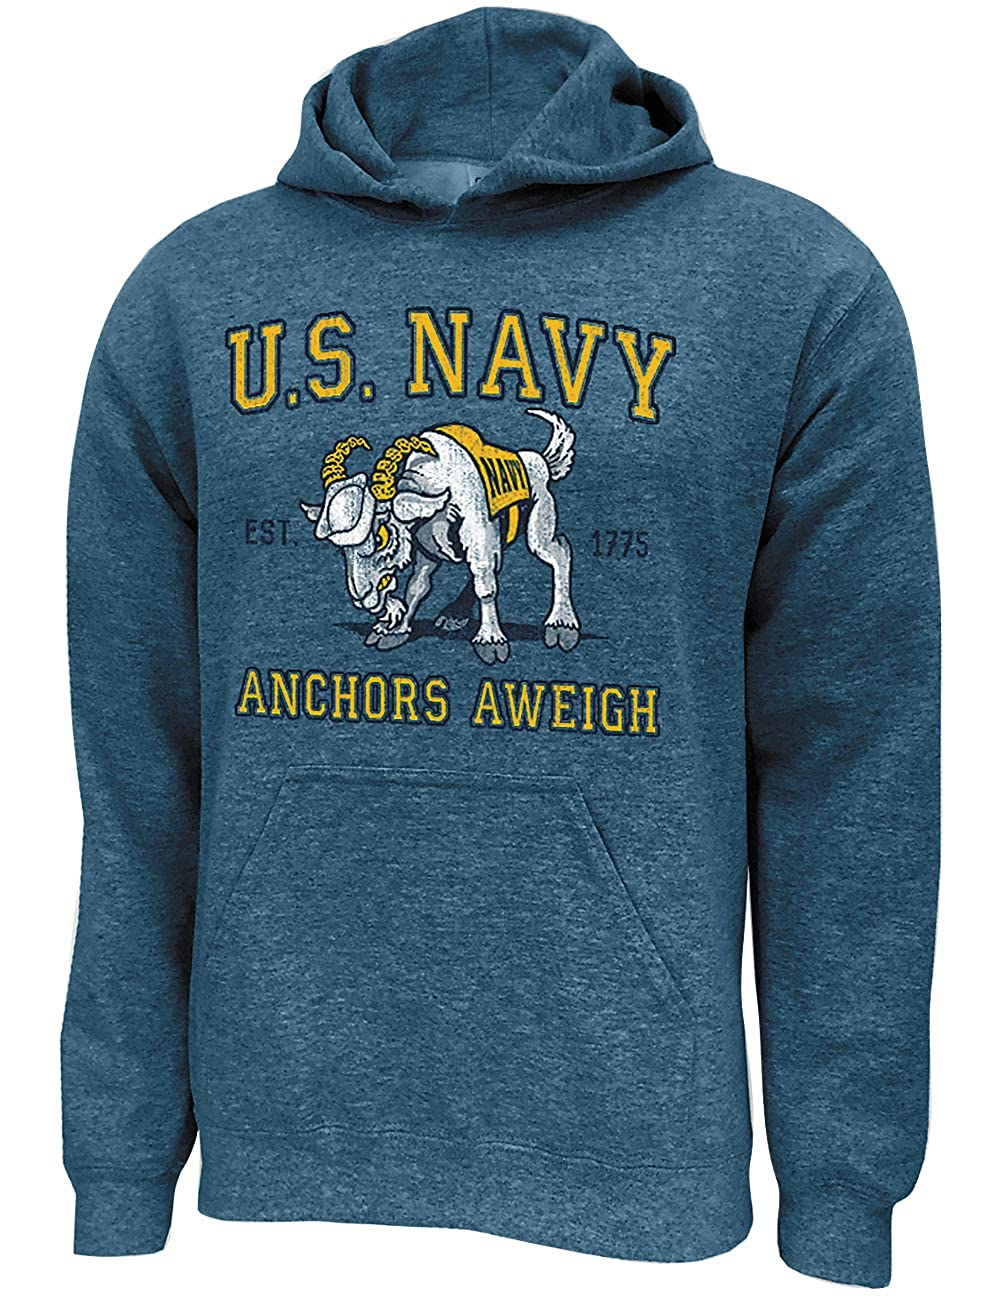 Anchors Aweigh US Navy Military Retro Logo Hoodie Est 1775